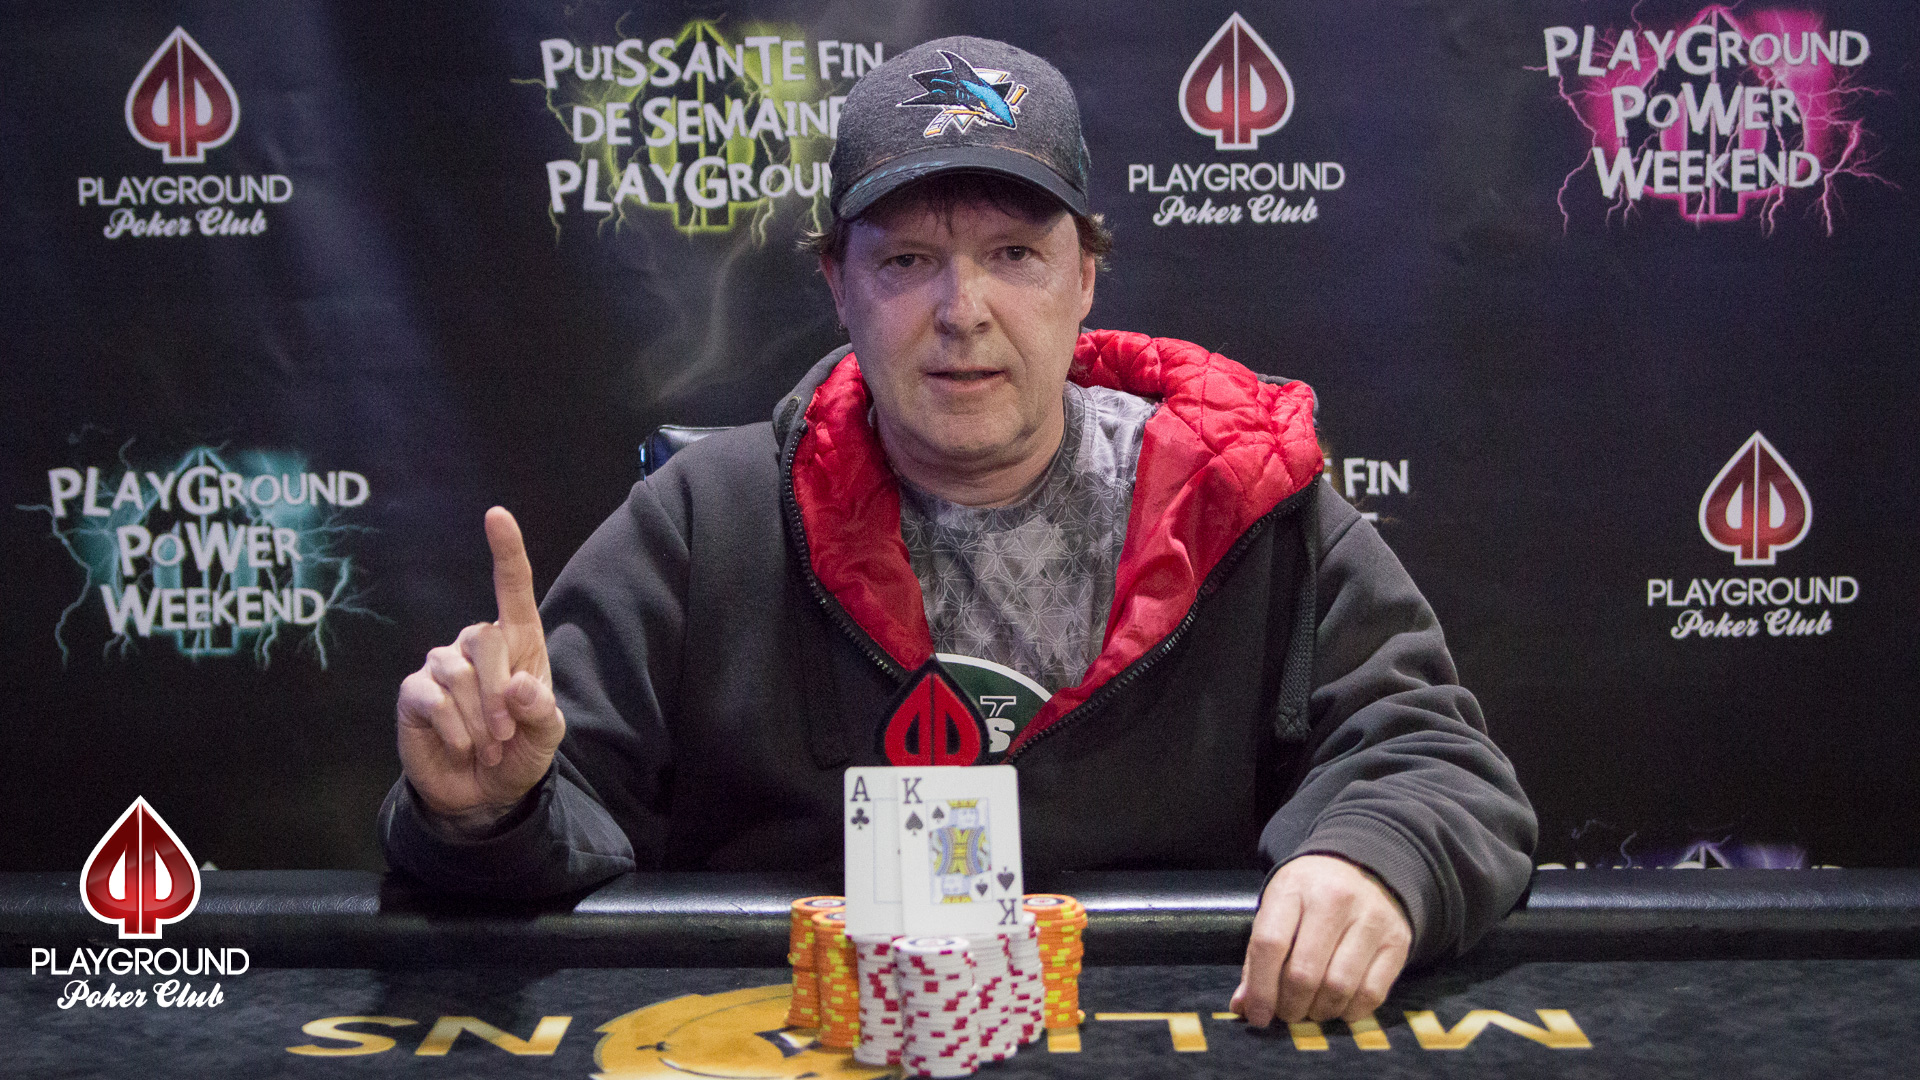 Event #8 Champion: Normand Plessis Belair